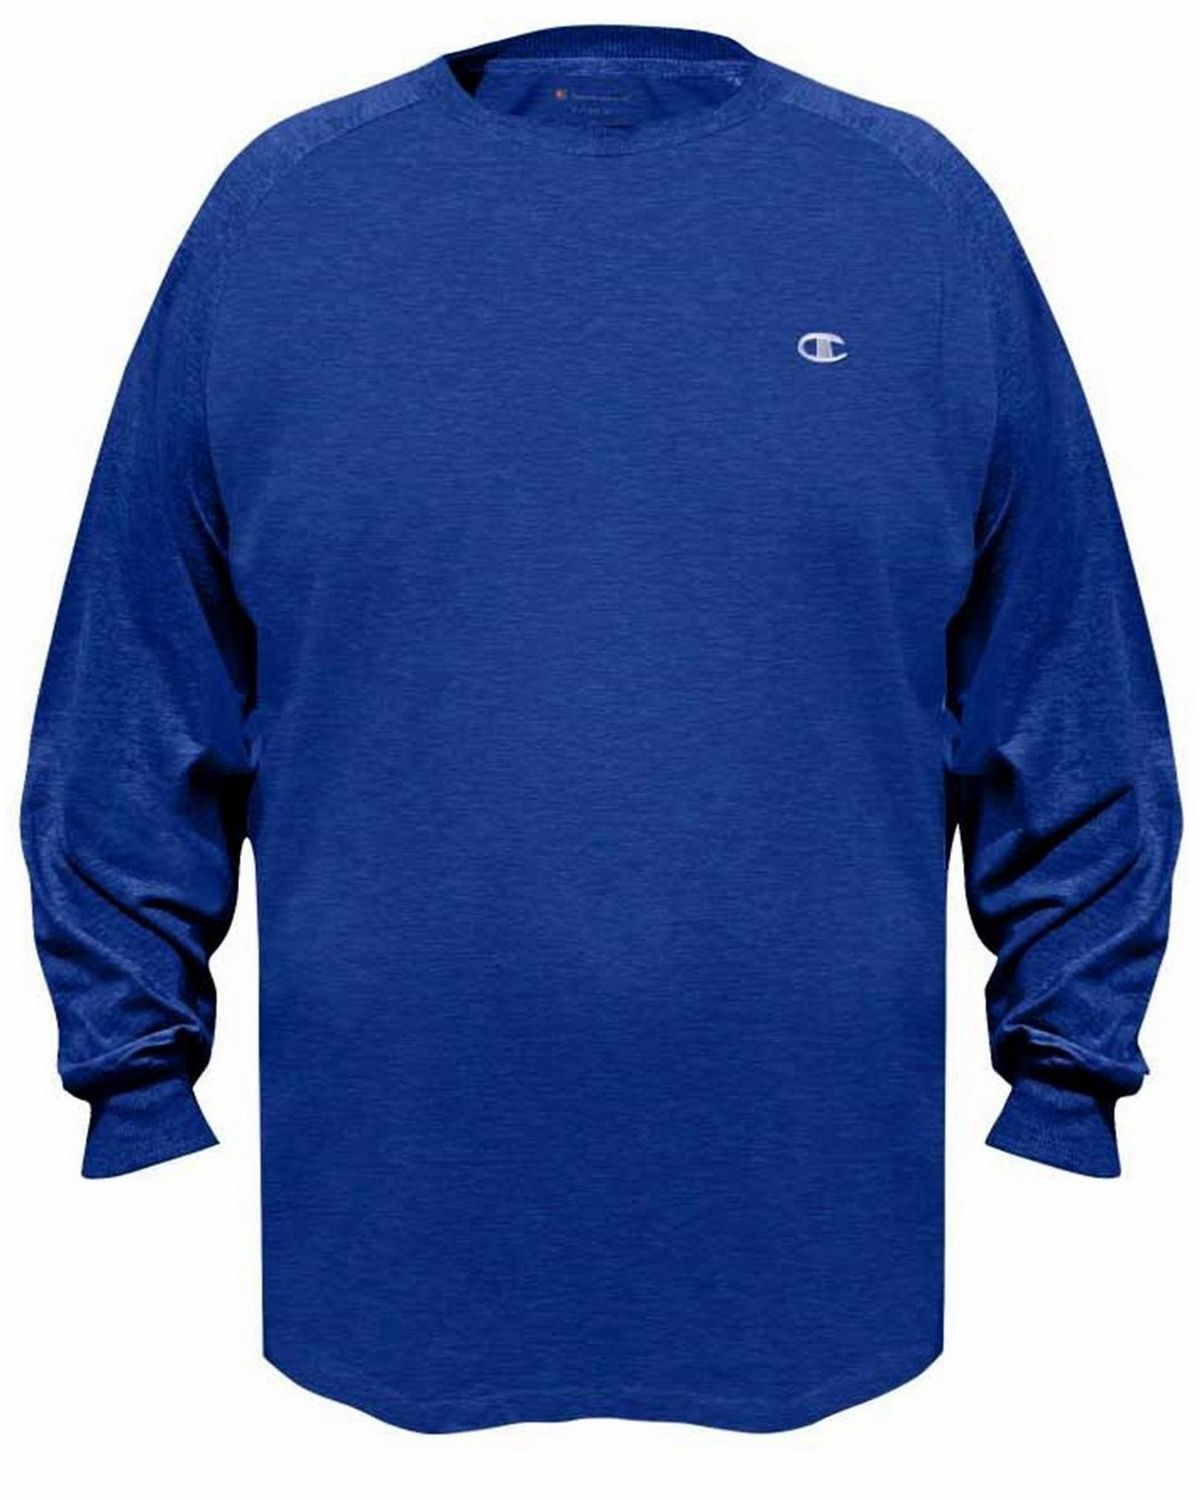 7b45e014c Buy Champion Ch316 Vapor Big & Tall Jersey Long-Sleeve Tee